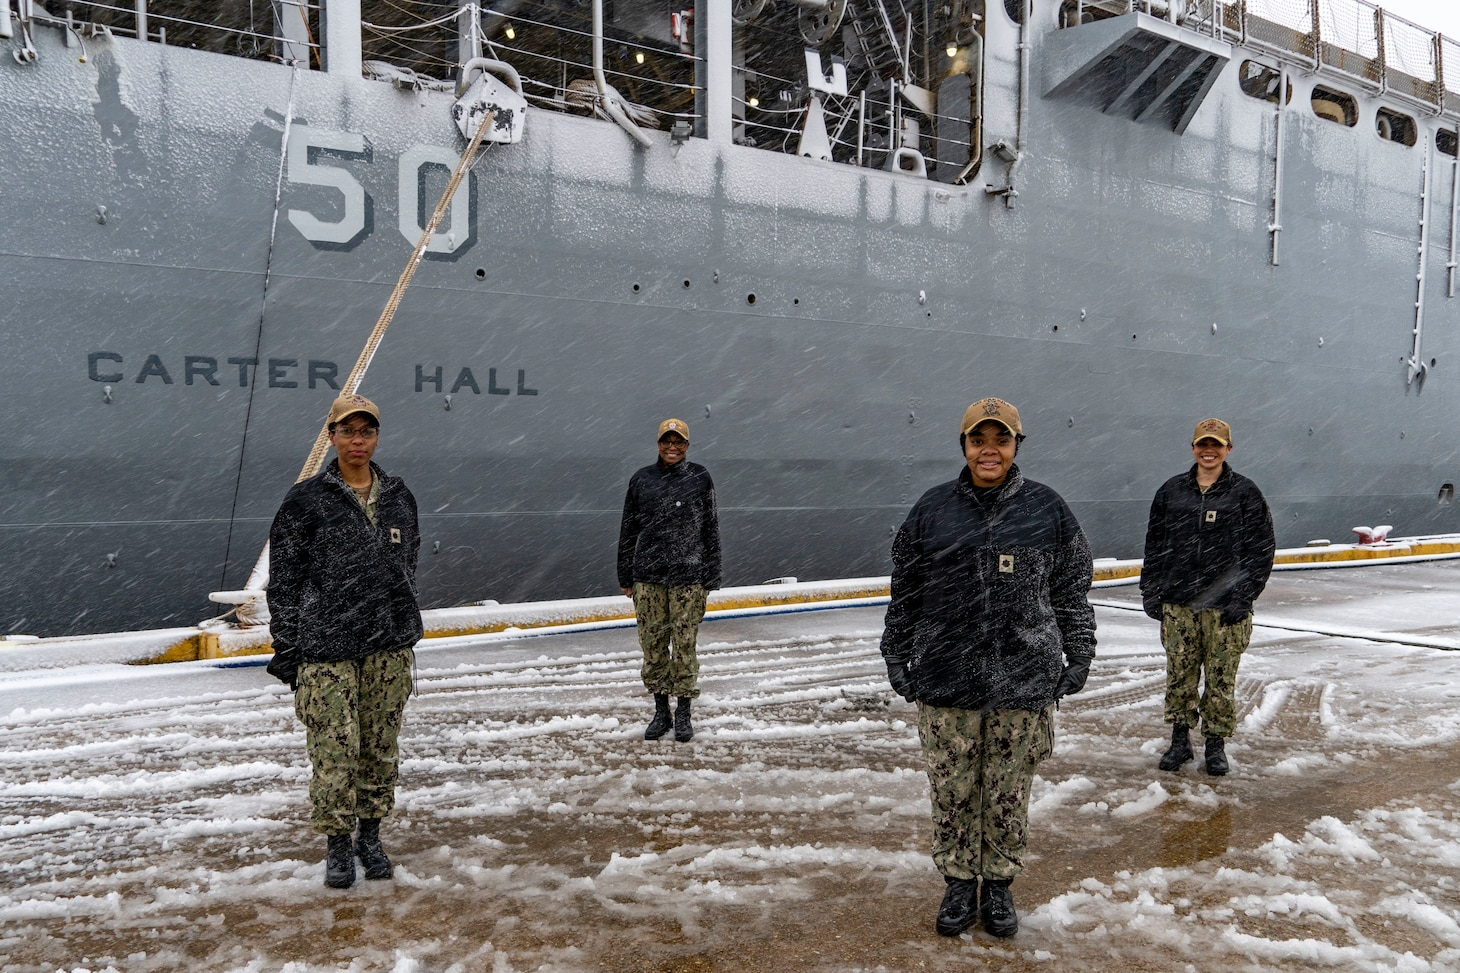 JOINT EXPEDITIONARY BASE LITTLE CREEK, Va. (Jan. 28, 2021) - Cmdr. Kimberly Jones, commanding officer of the Whidbey Island-class dock landing ship USS Tortuga, Cmdr. LaDonna Simpson, commanding officer of the Harpers Ferry-class dock landing ship USS Carter Hall (LSD 50), Cmdr. Kathryn Wijnaldum,  commanding officer of the Harpers Ferry-class dock landing ship USS Oak Hill (LSD 51),  and Cmdr. Kristel O'Canas, commanding officer of the Whidbey Island-class dock landing ship USS Whidbey Island (LSD 41) pose for a photo in front of Carter Hall, Jan. 28, 2021. (U.S. Navy photo by Mass Communication Specialist 2nd Class John D. Bellino/Released)